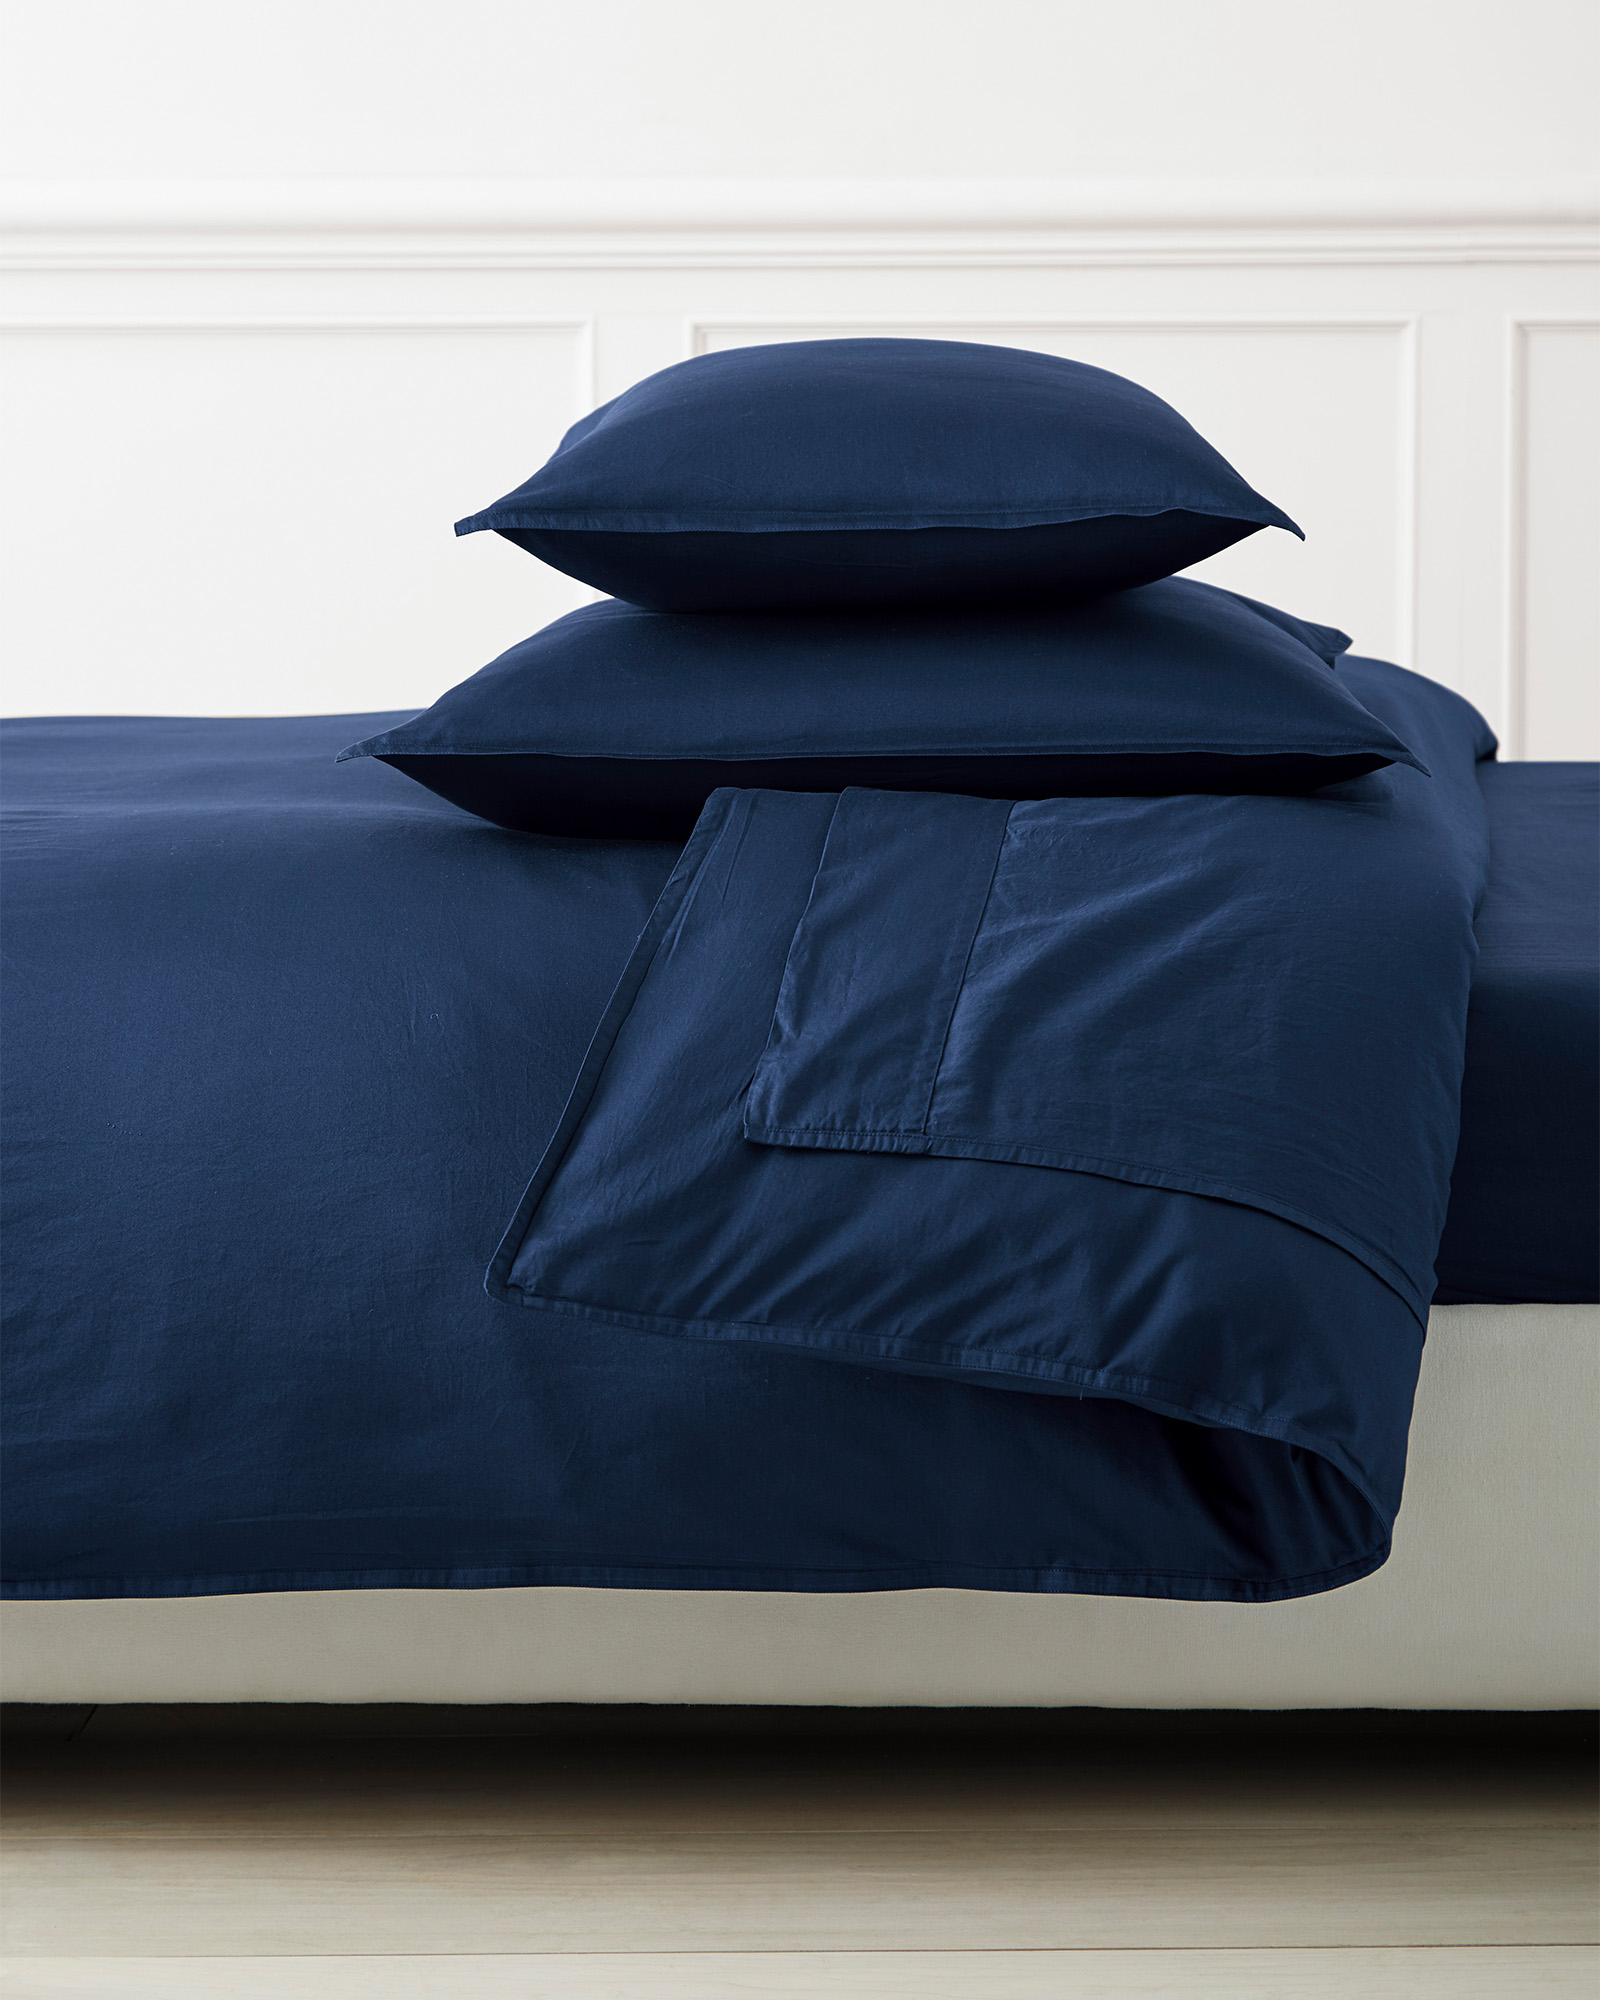 Sorrento Sateen Duvet Cover, Navy